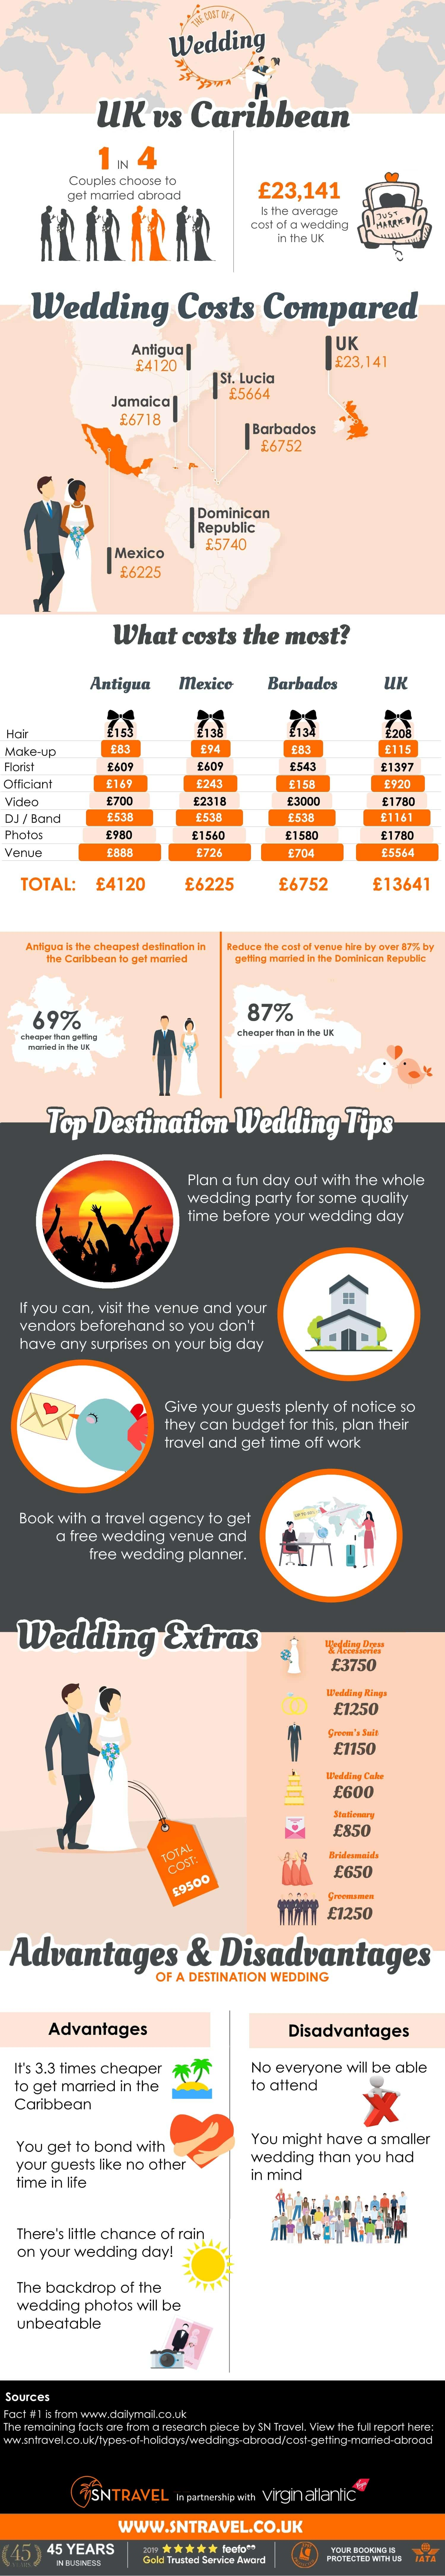 The Cost of a Wedding - UK vs Caribbean infographic